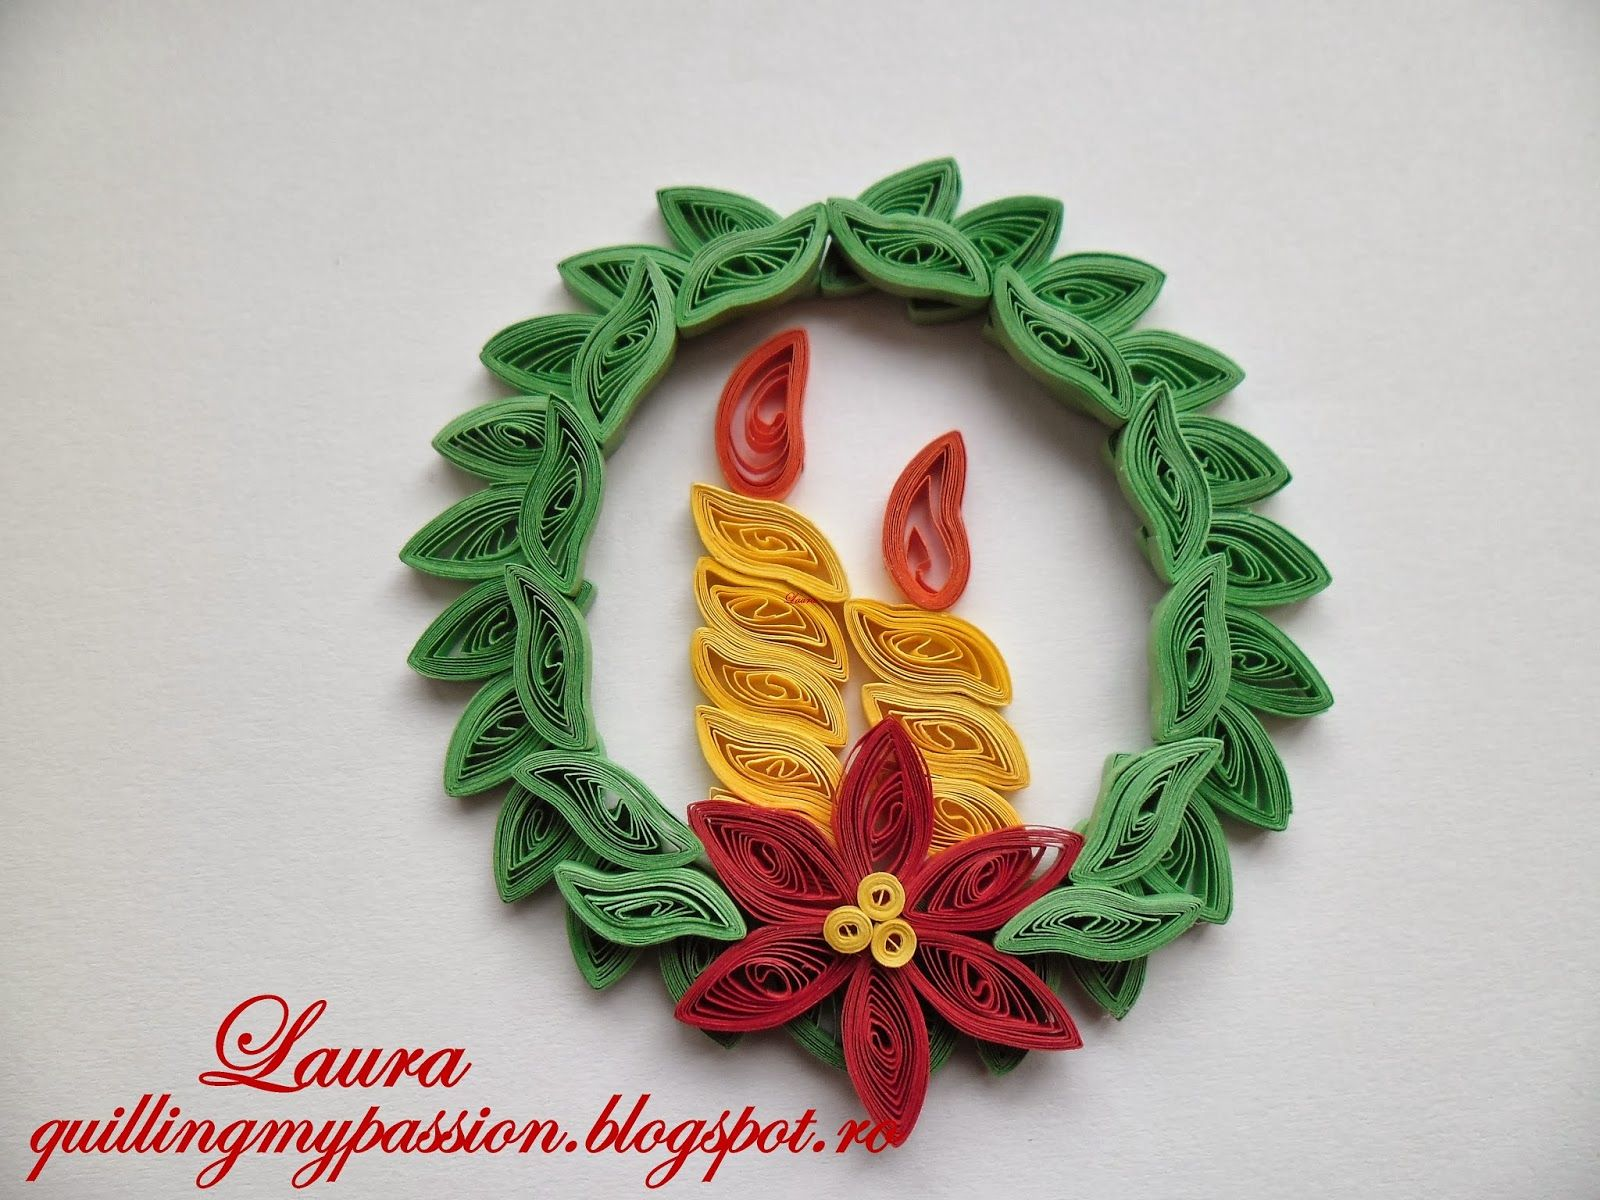 Quilling My Passion Quilled Christmas Ornaments Quilling Christmas Quilling Patterns Paper Quilling